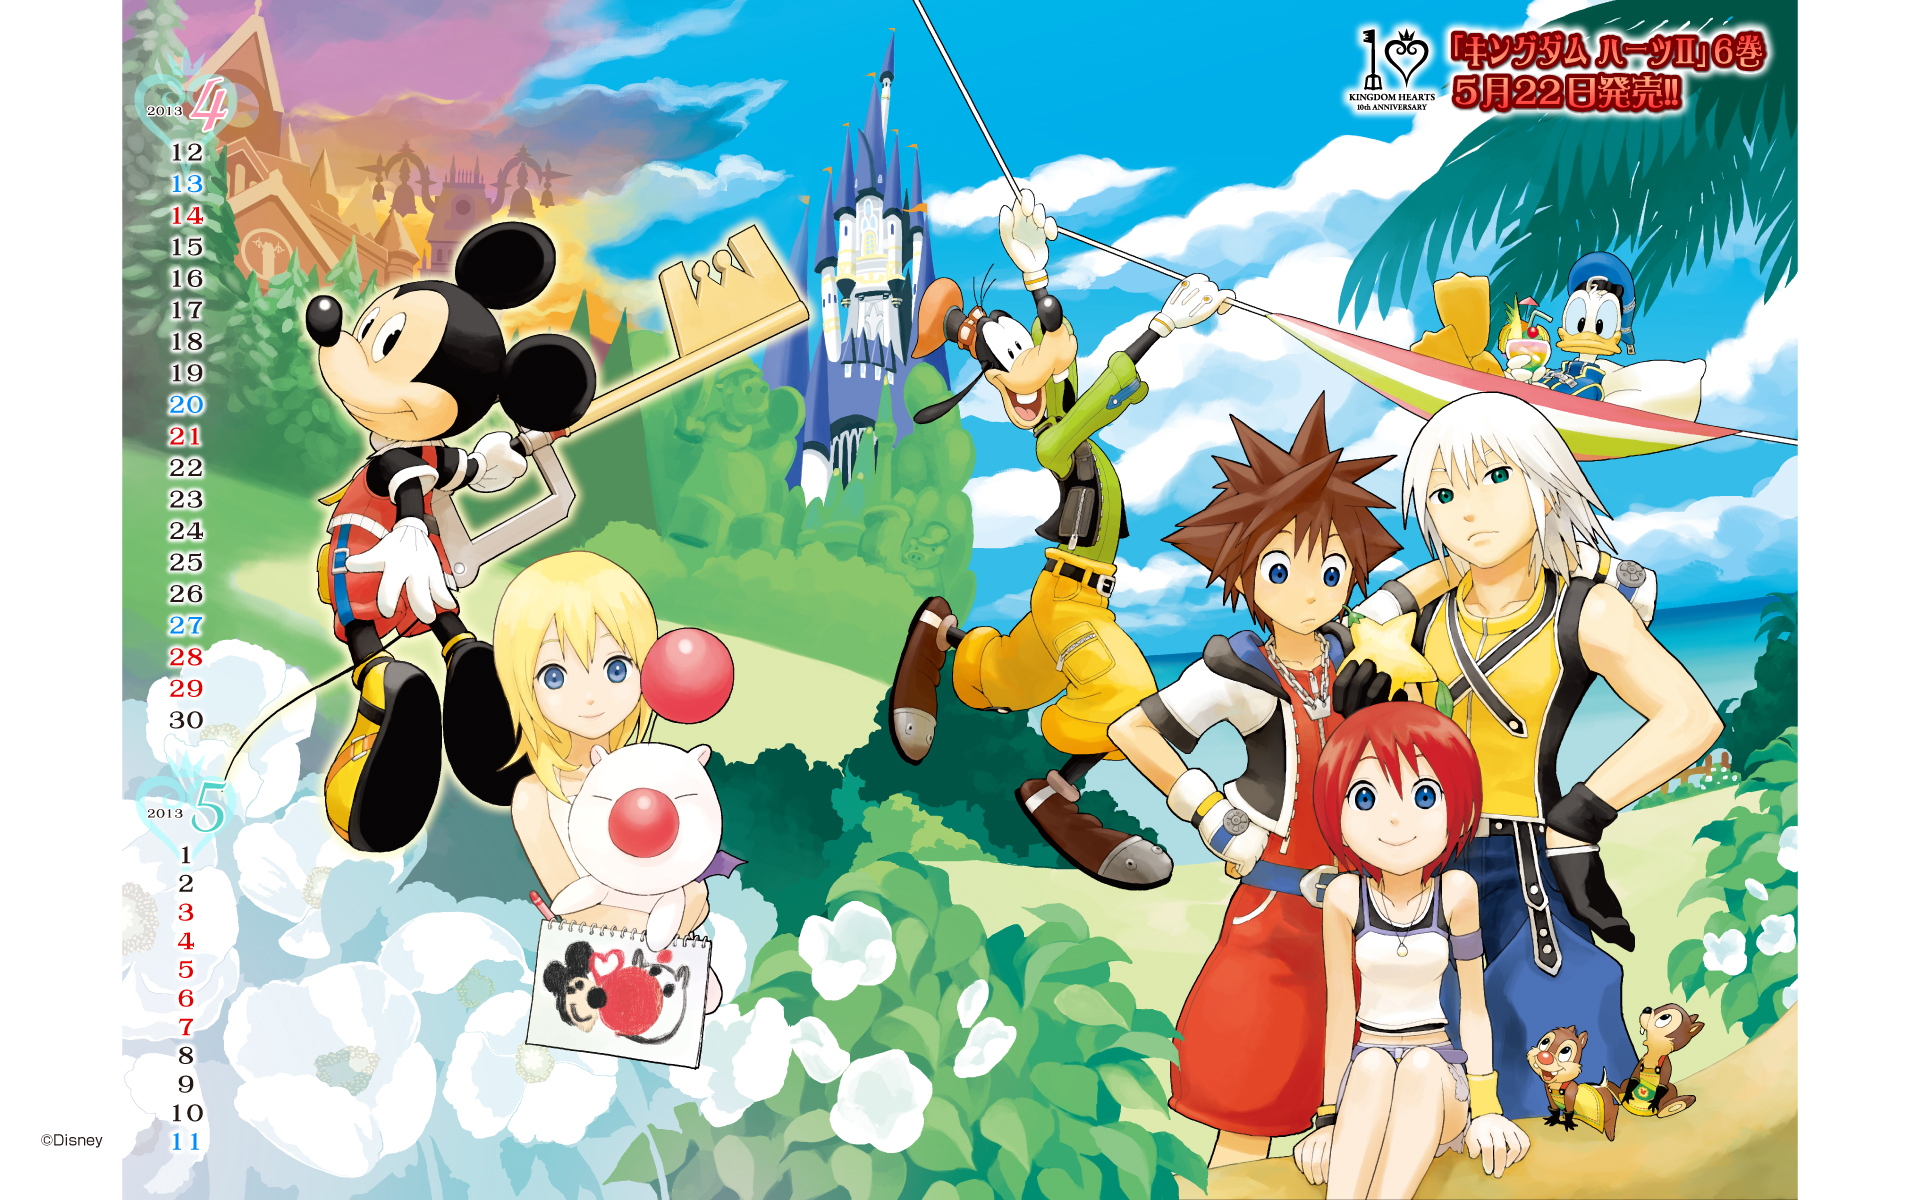 KINGDOM HEARTS 10th Anniversary Wallpaper #9! - News - Kingdom Hearts ...